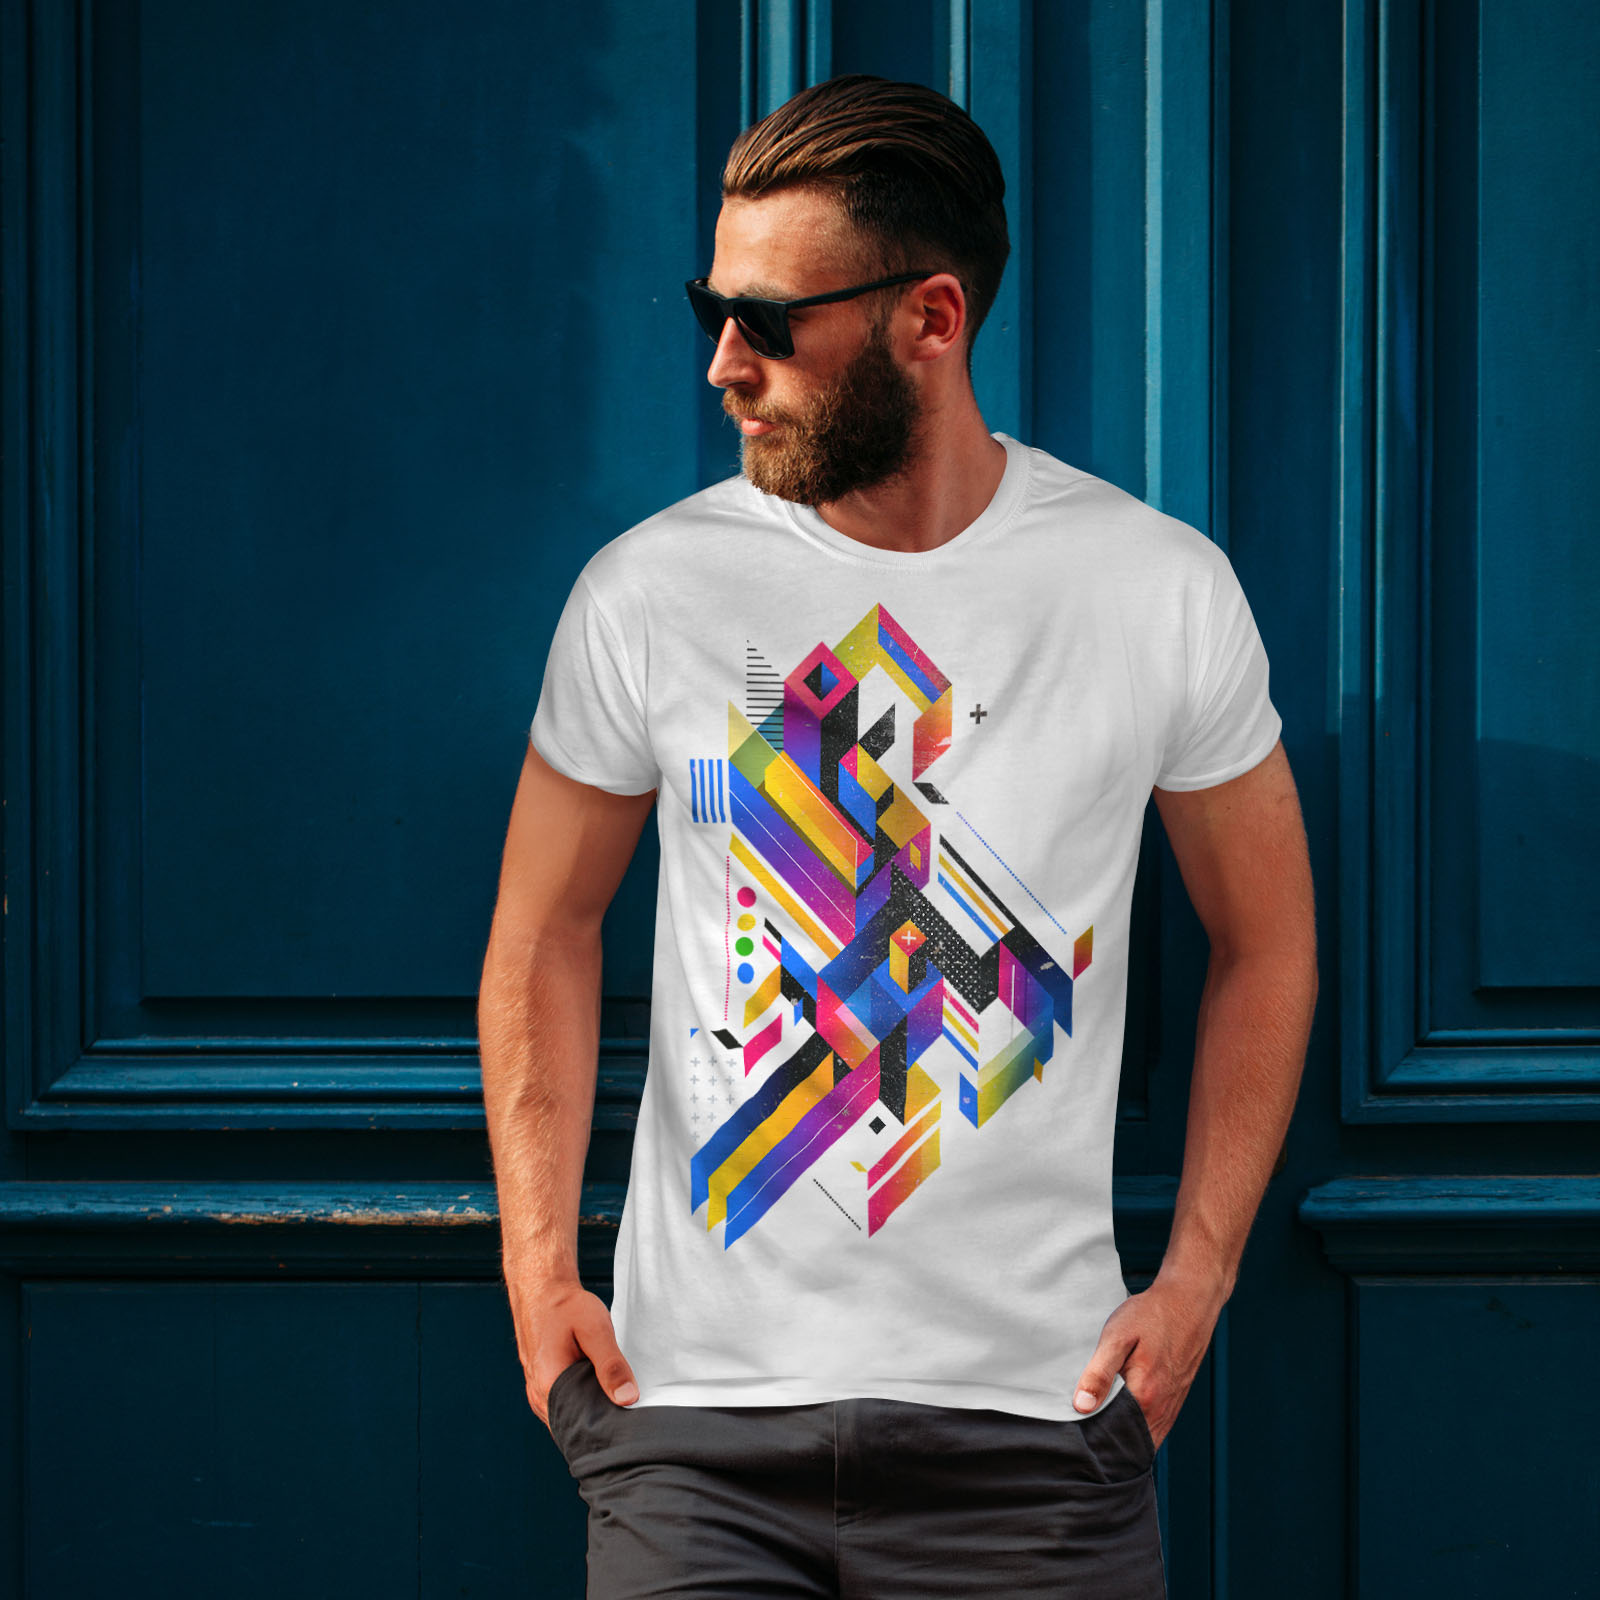 Wellcoda-Abstract-Maze-T-shirt-homme-Labyrinthe-conception-graphique-imprime-Tee miniature 10